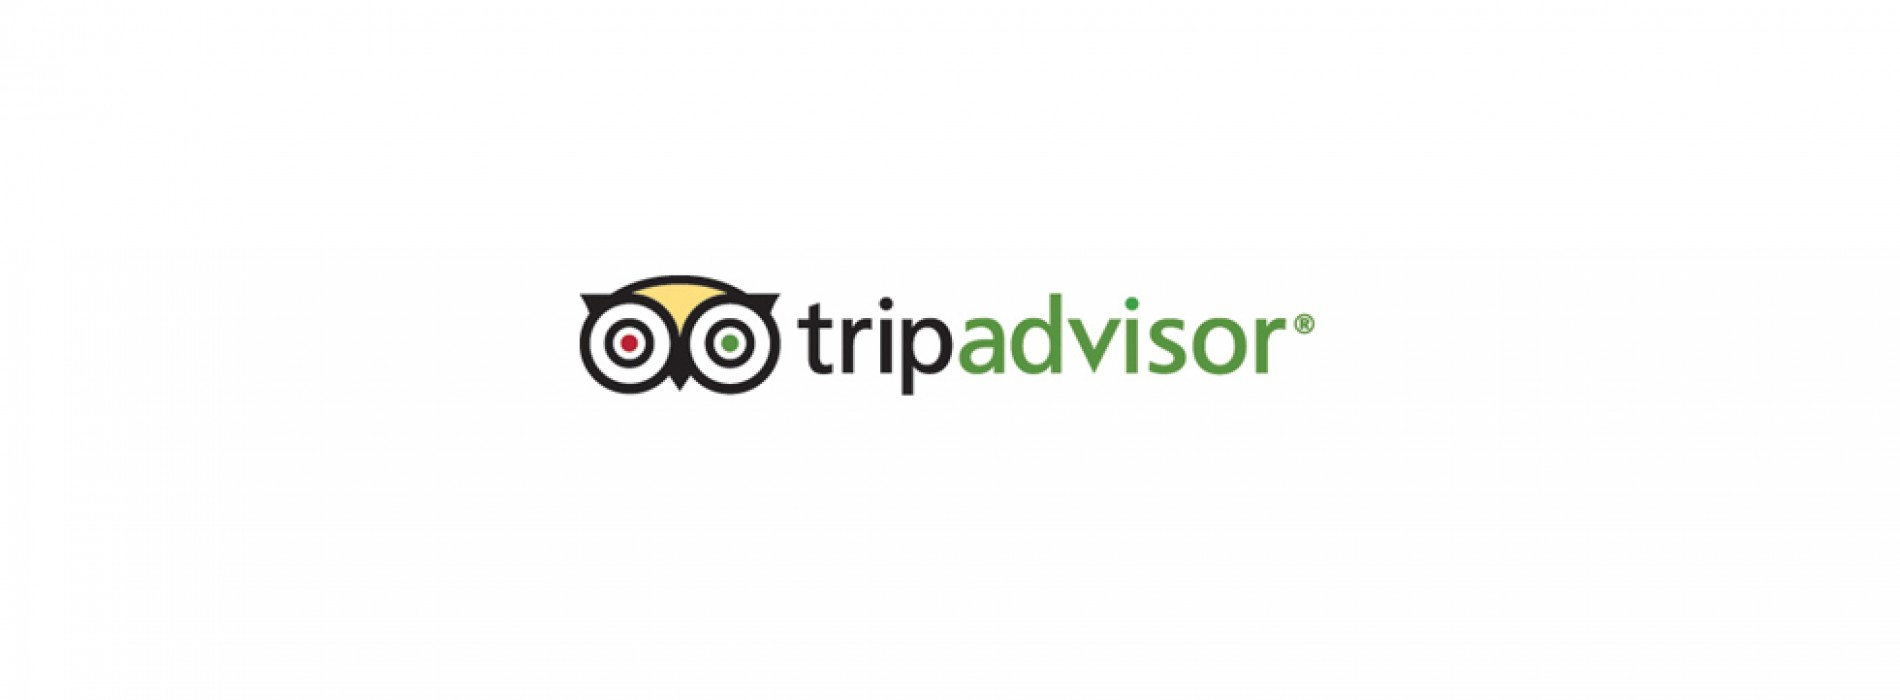 Chat with new TripAdvisor Facebook Messenger Bot to get great travel recommendations for your next Trip or Stay-cation